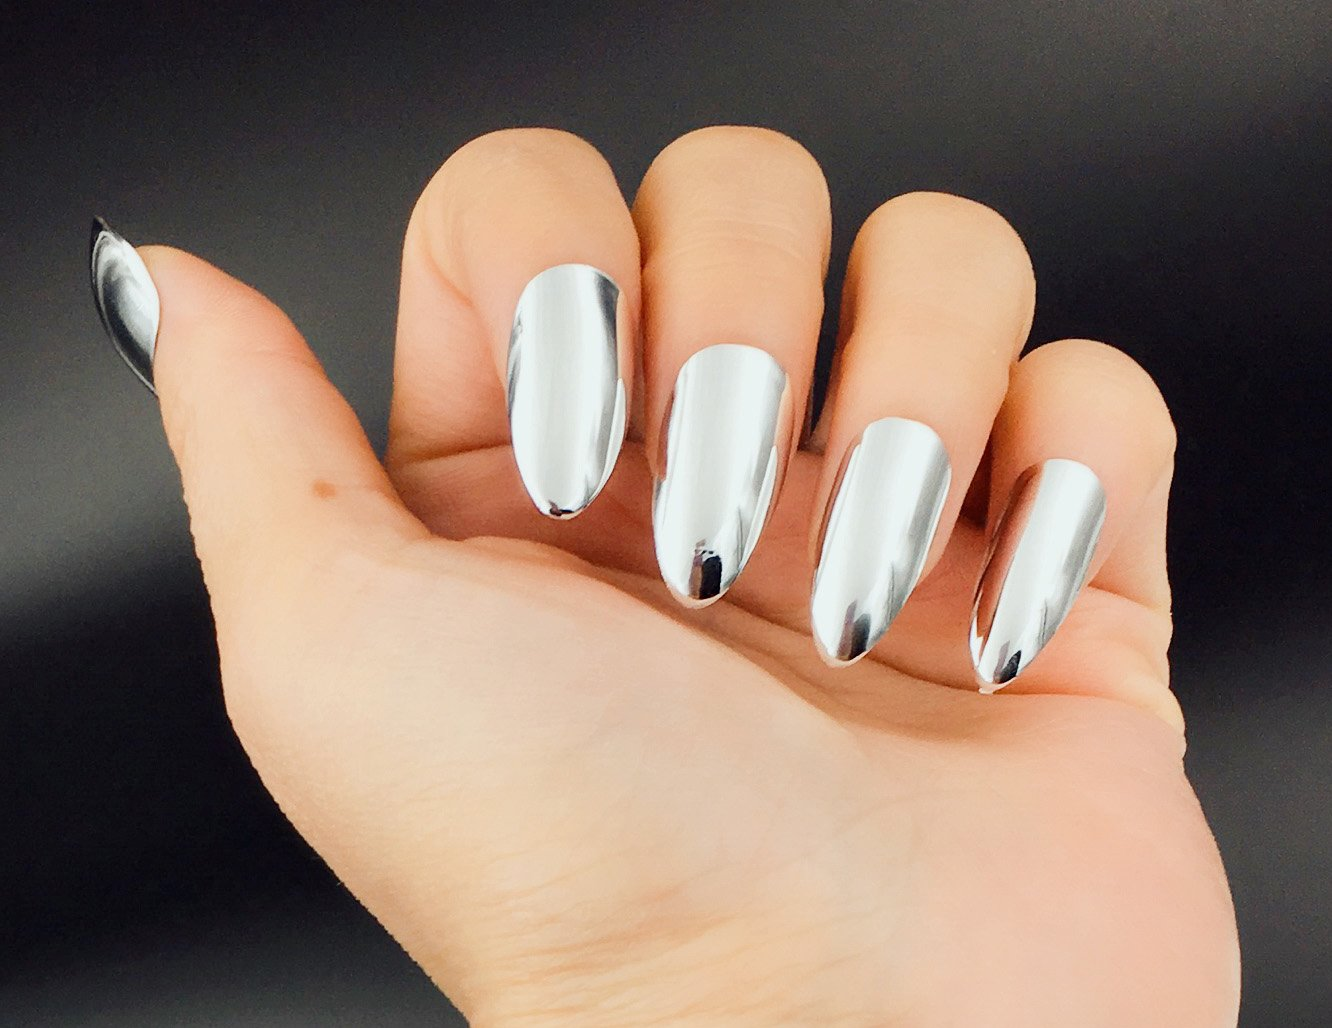 Amazon.com : YUNAI Silver Mirror Effect Fake Nails Silver Metallic Punk False Nails Stilleto Nail Tips : Beauty